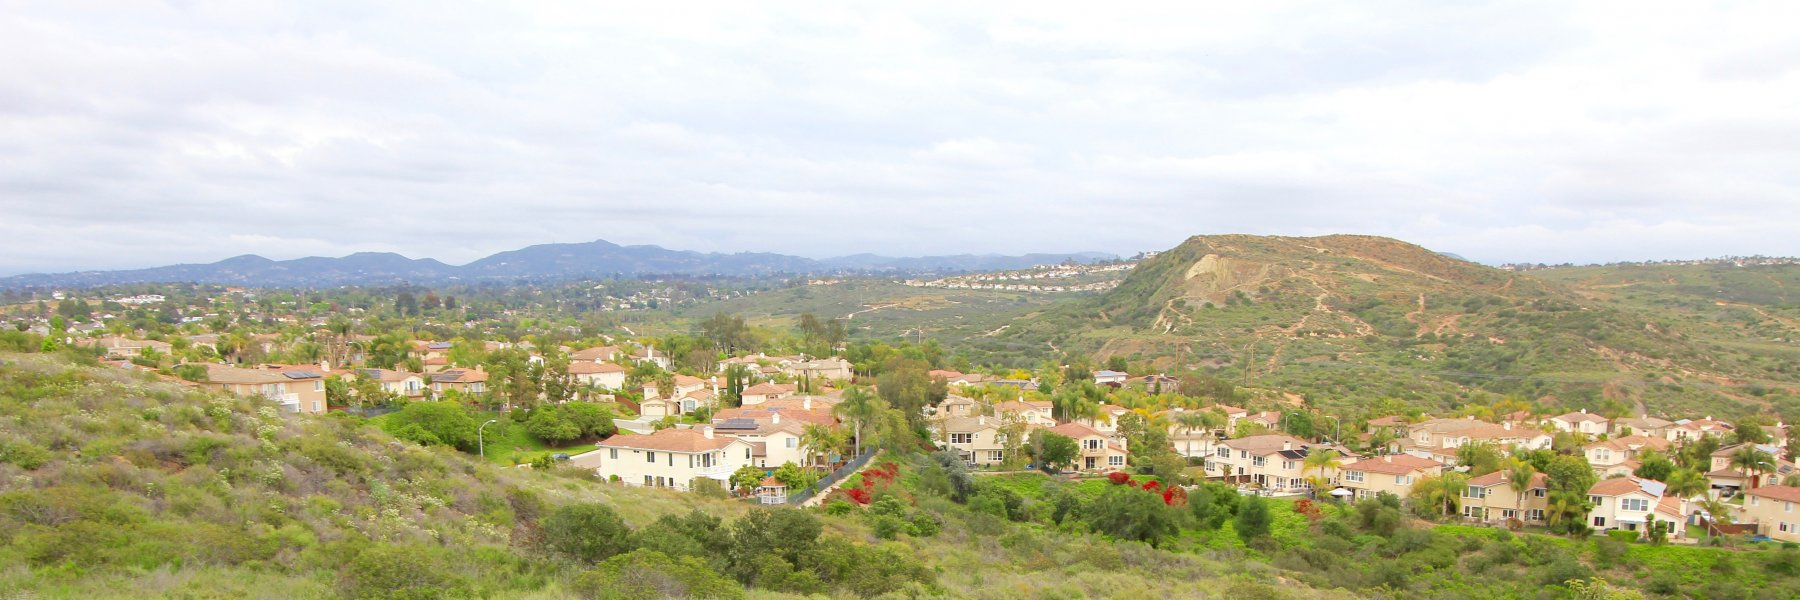 Calavera Hills is a community of homes in Carlsbad California